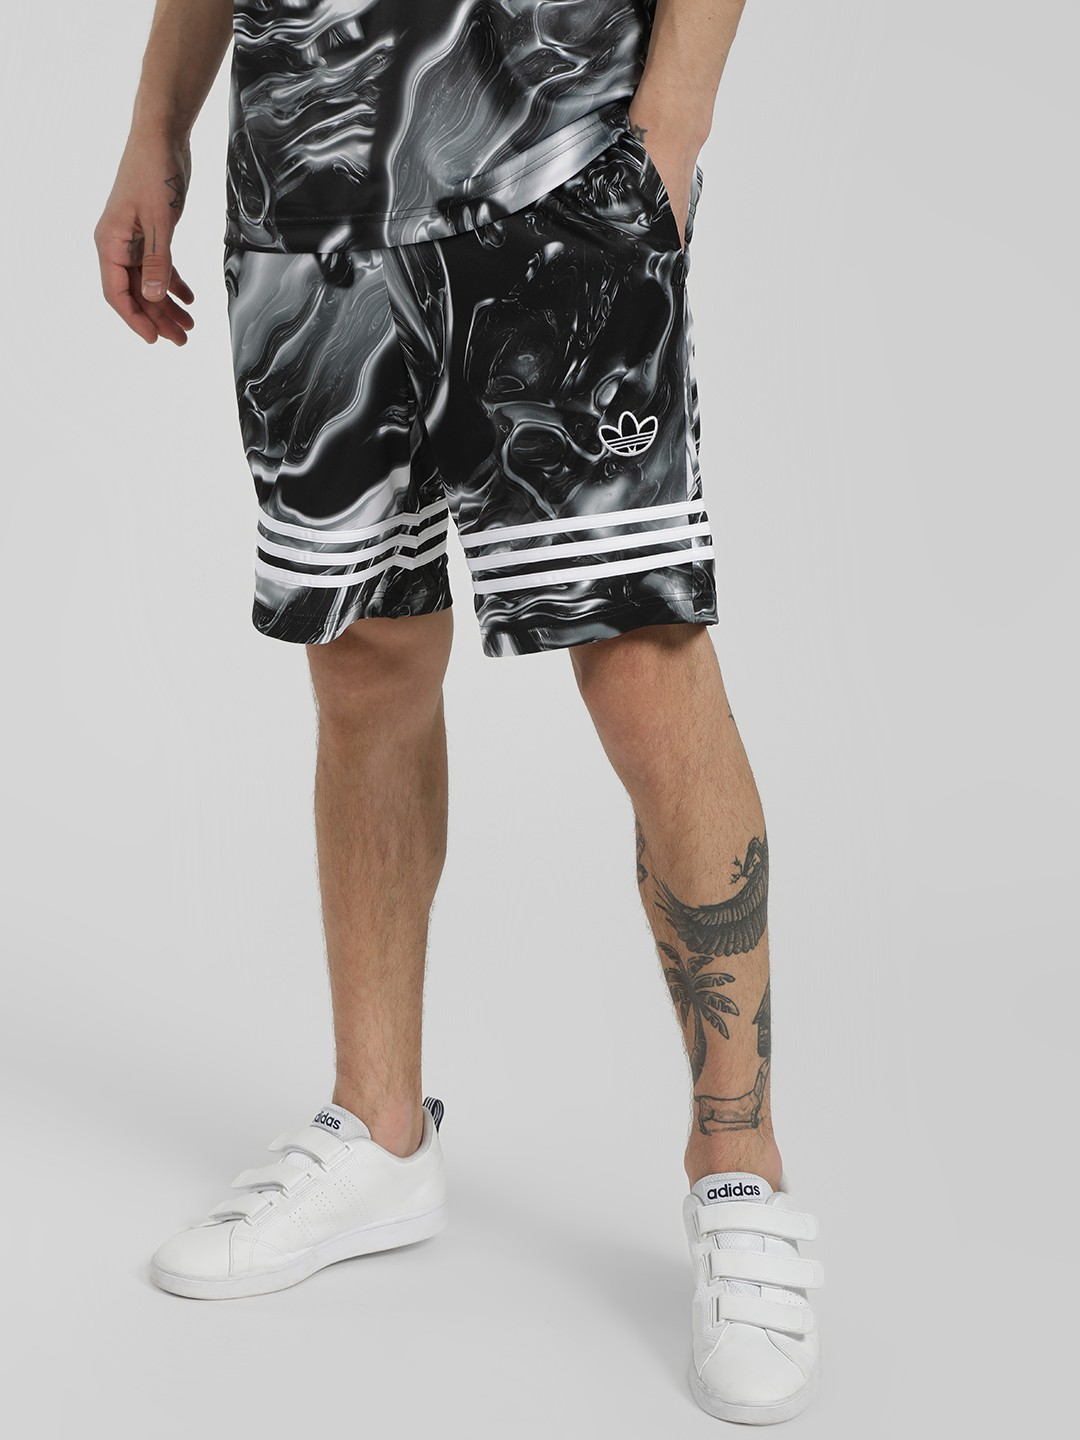 Adidas Originals Multi Melted Marble Shorts 1